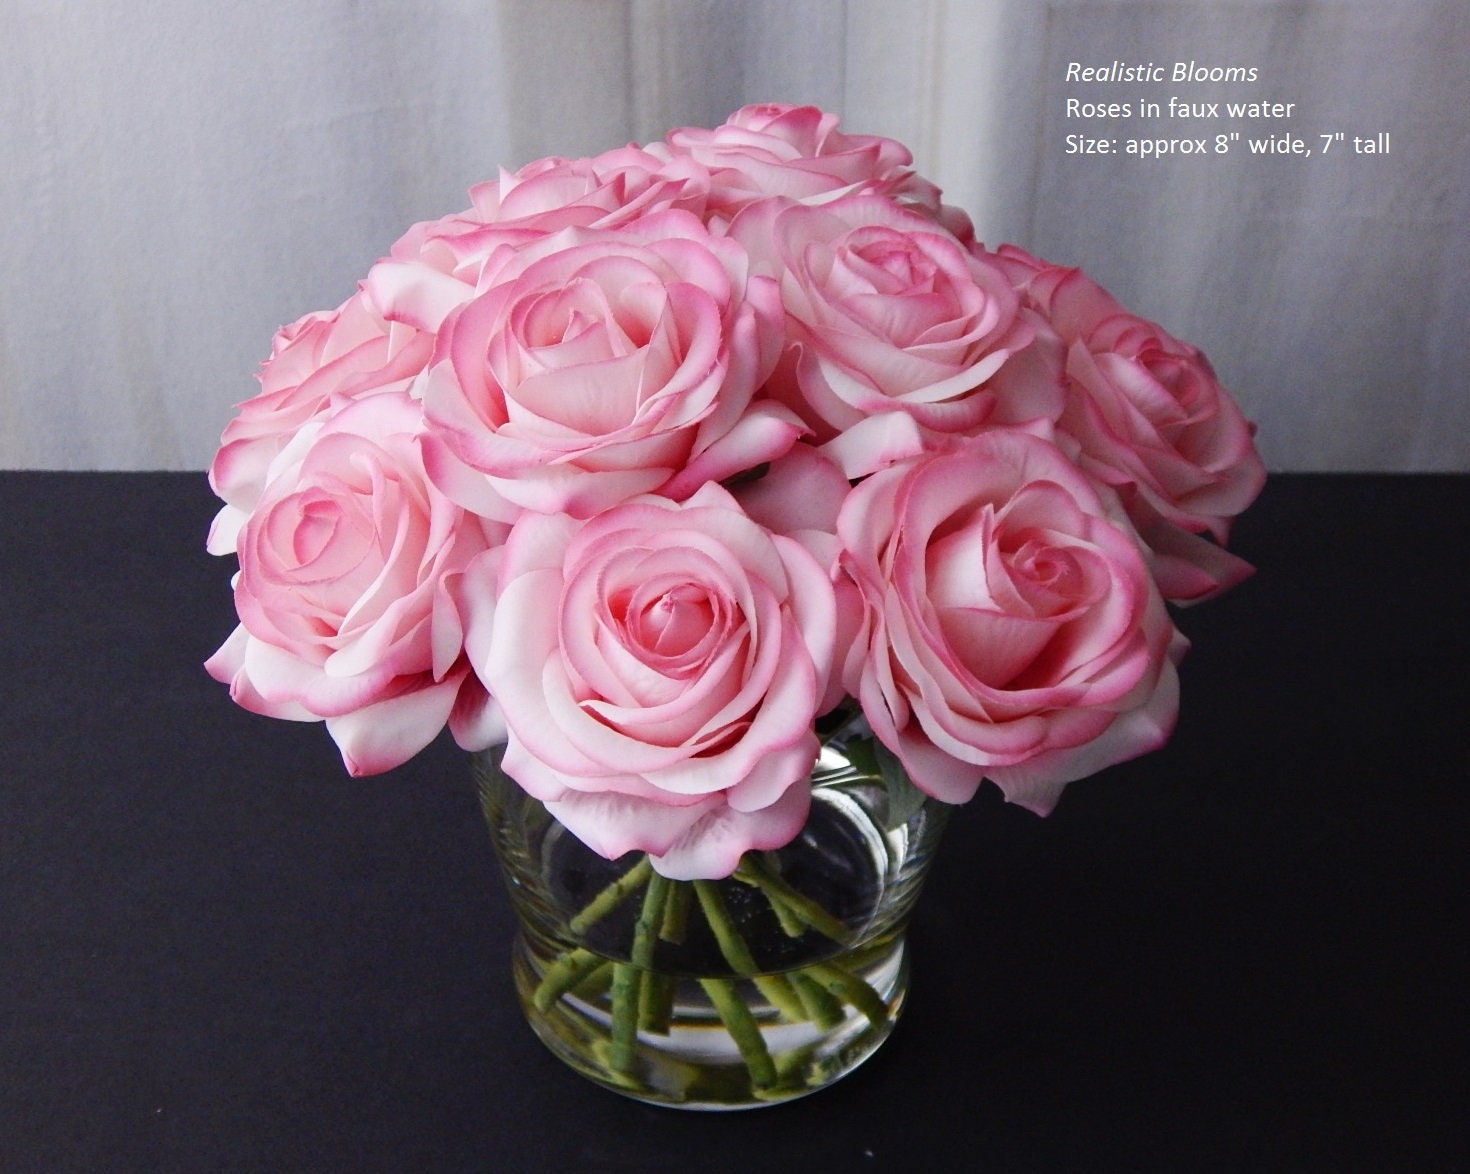 Pinkblush Silk Roseroses Faux Water Acrylic Illusion Real